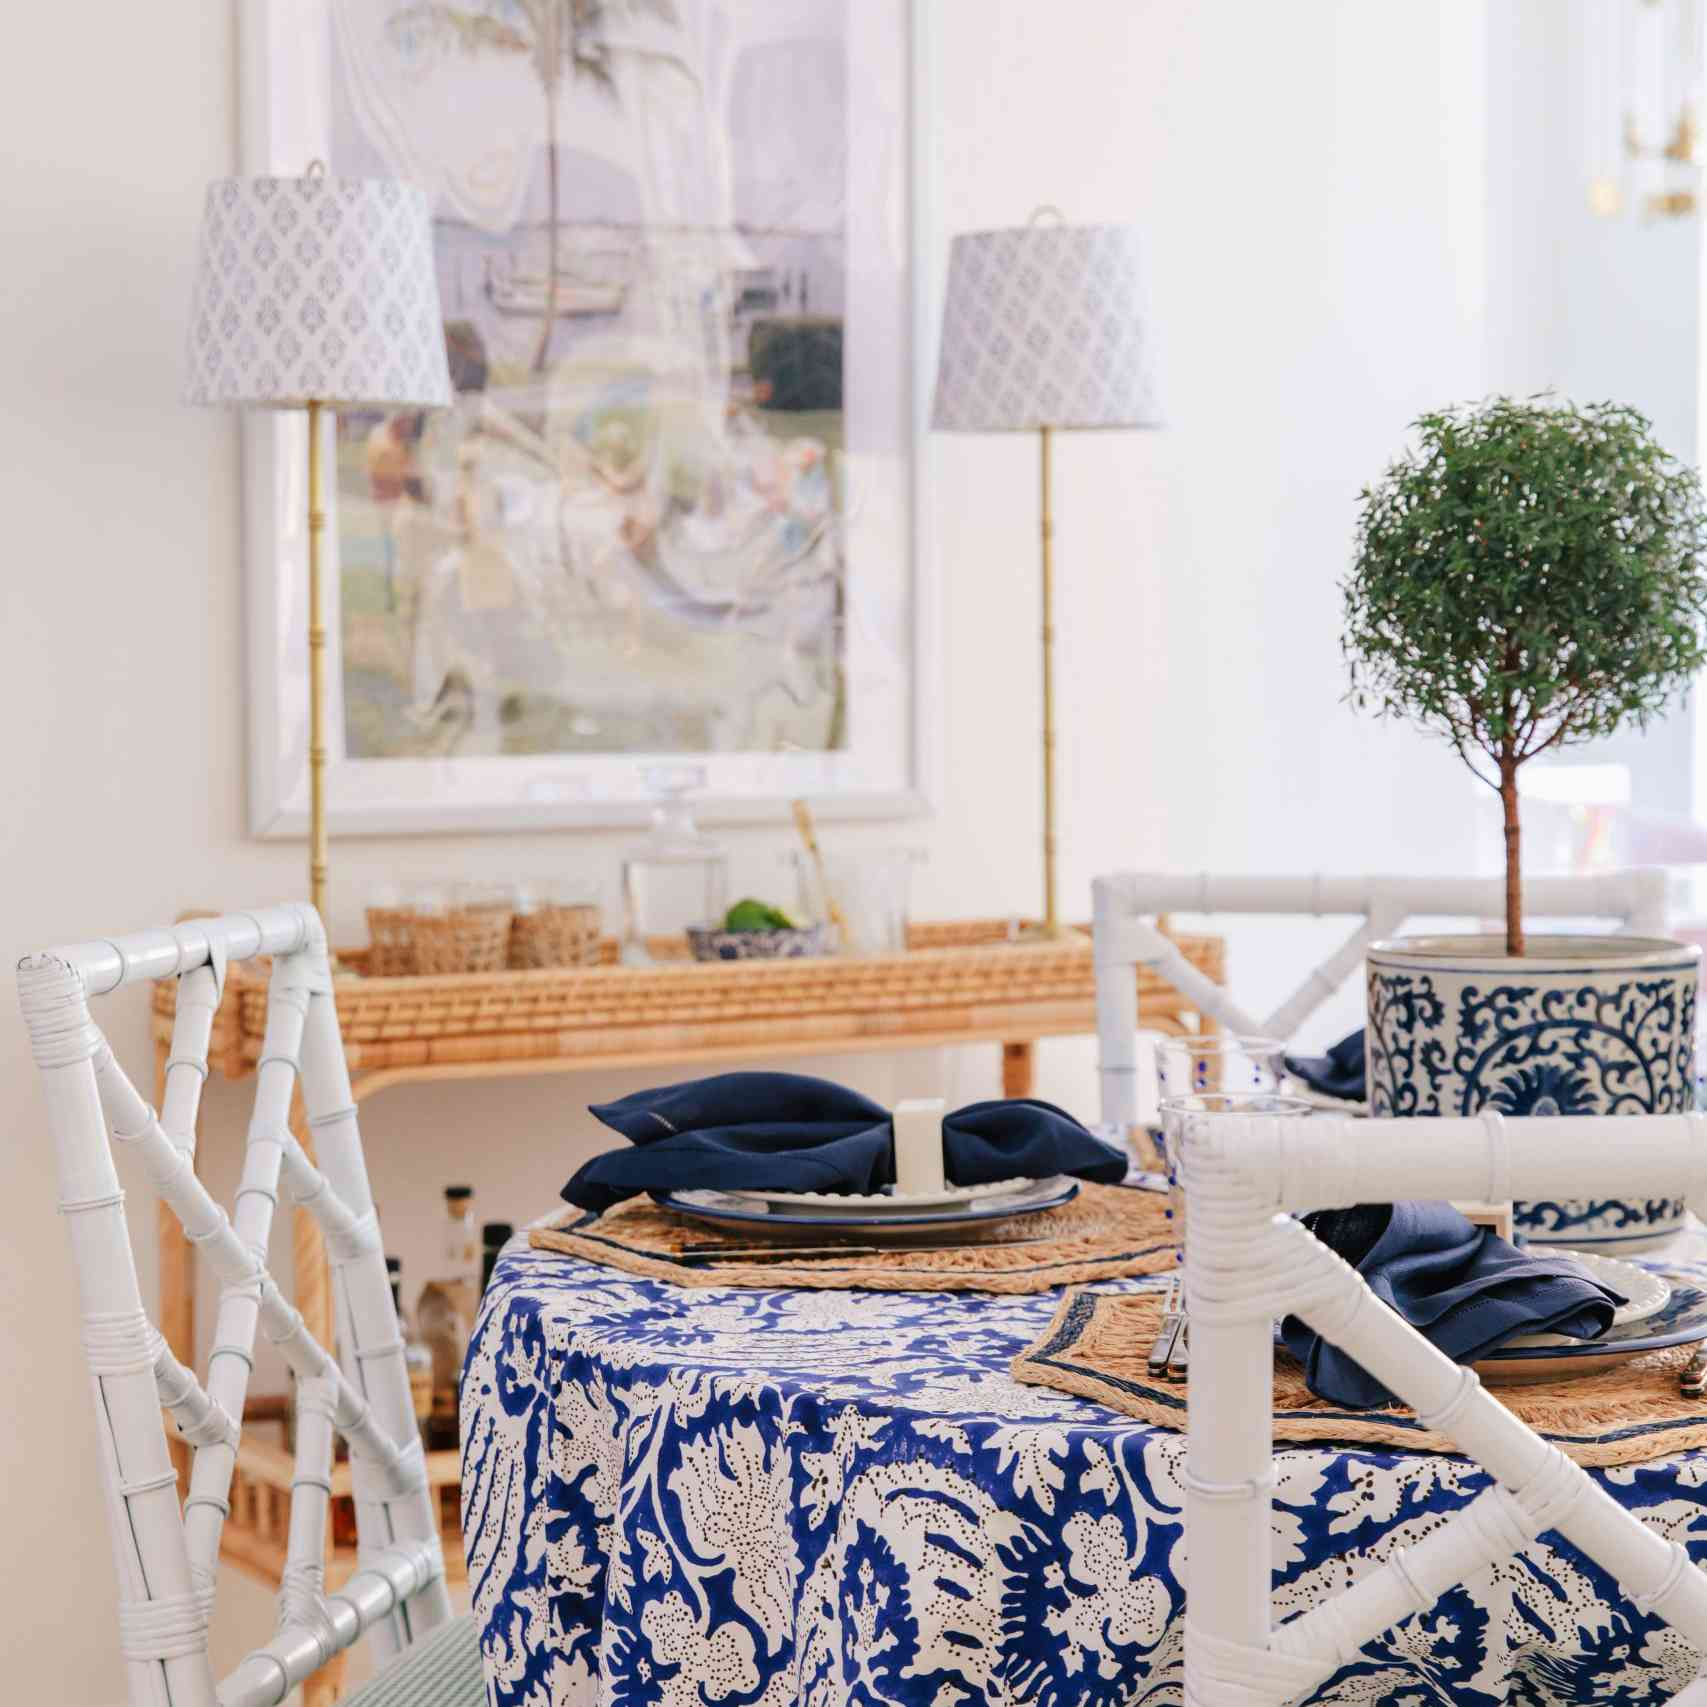 Dining set with vintage table cloth.